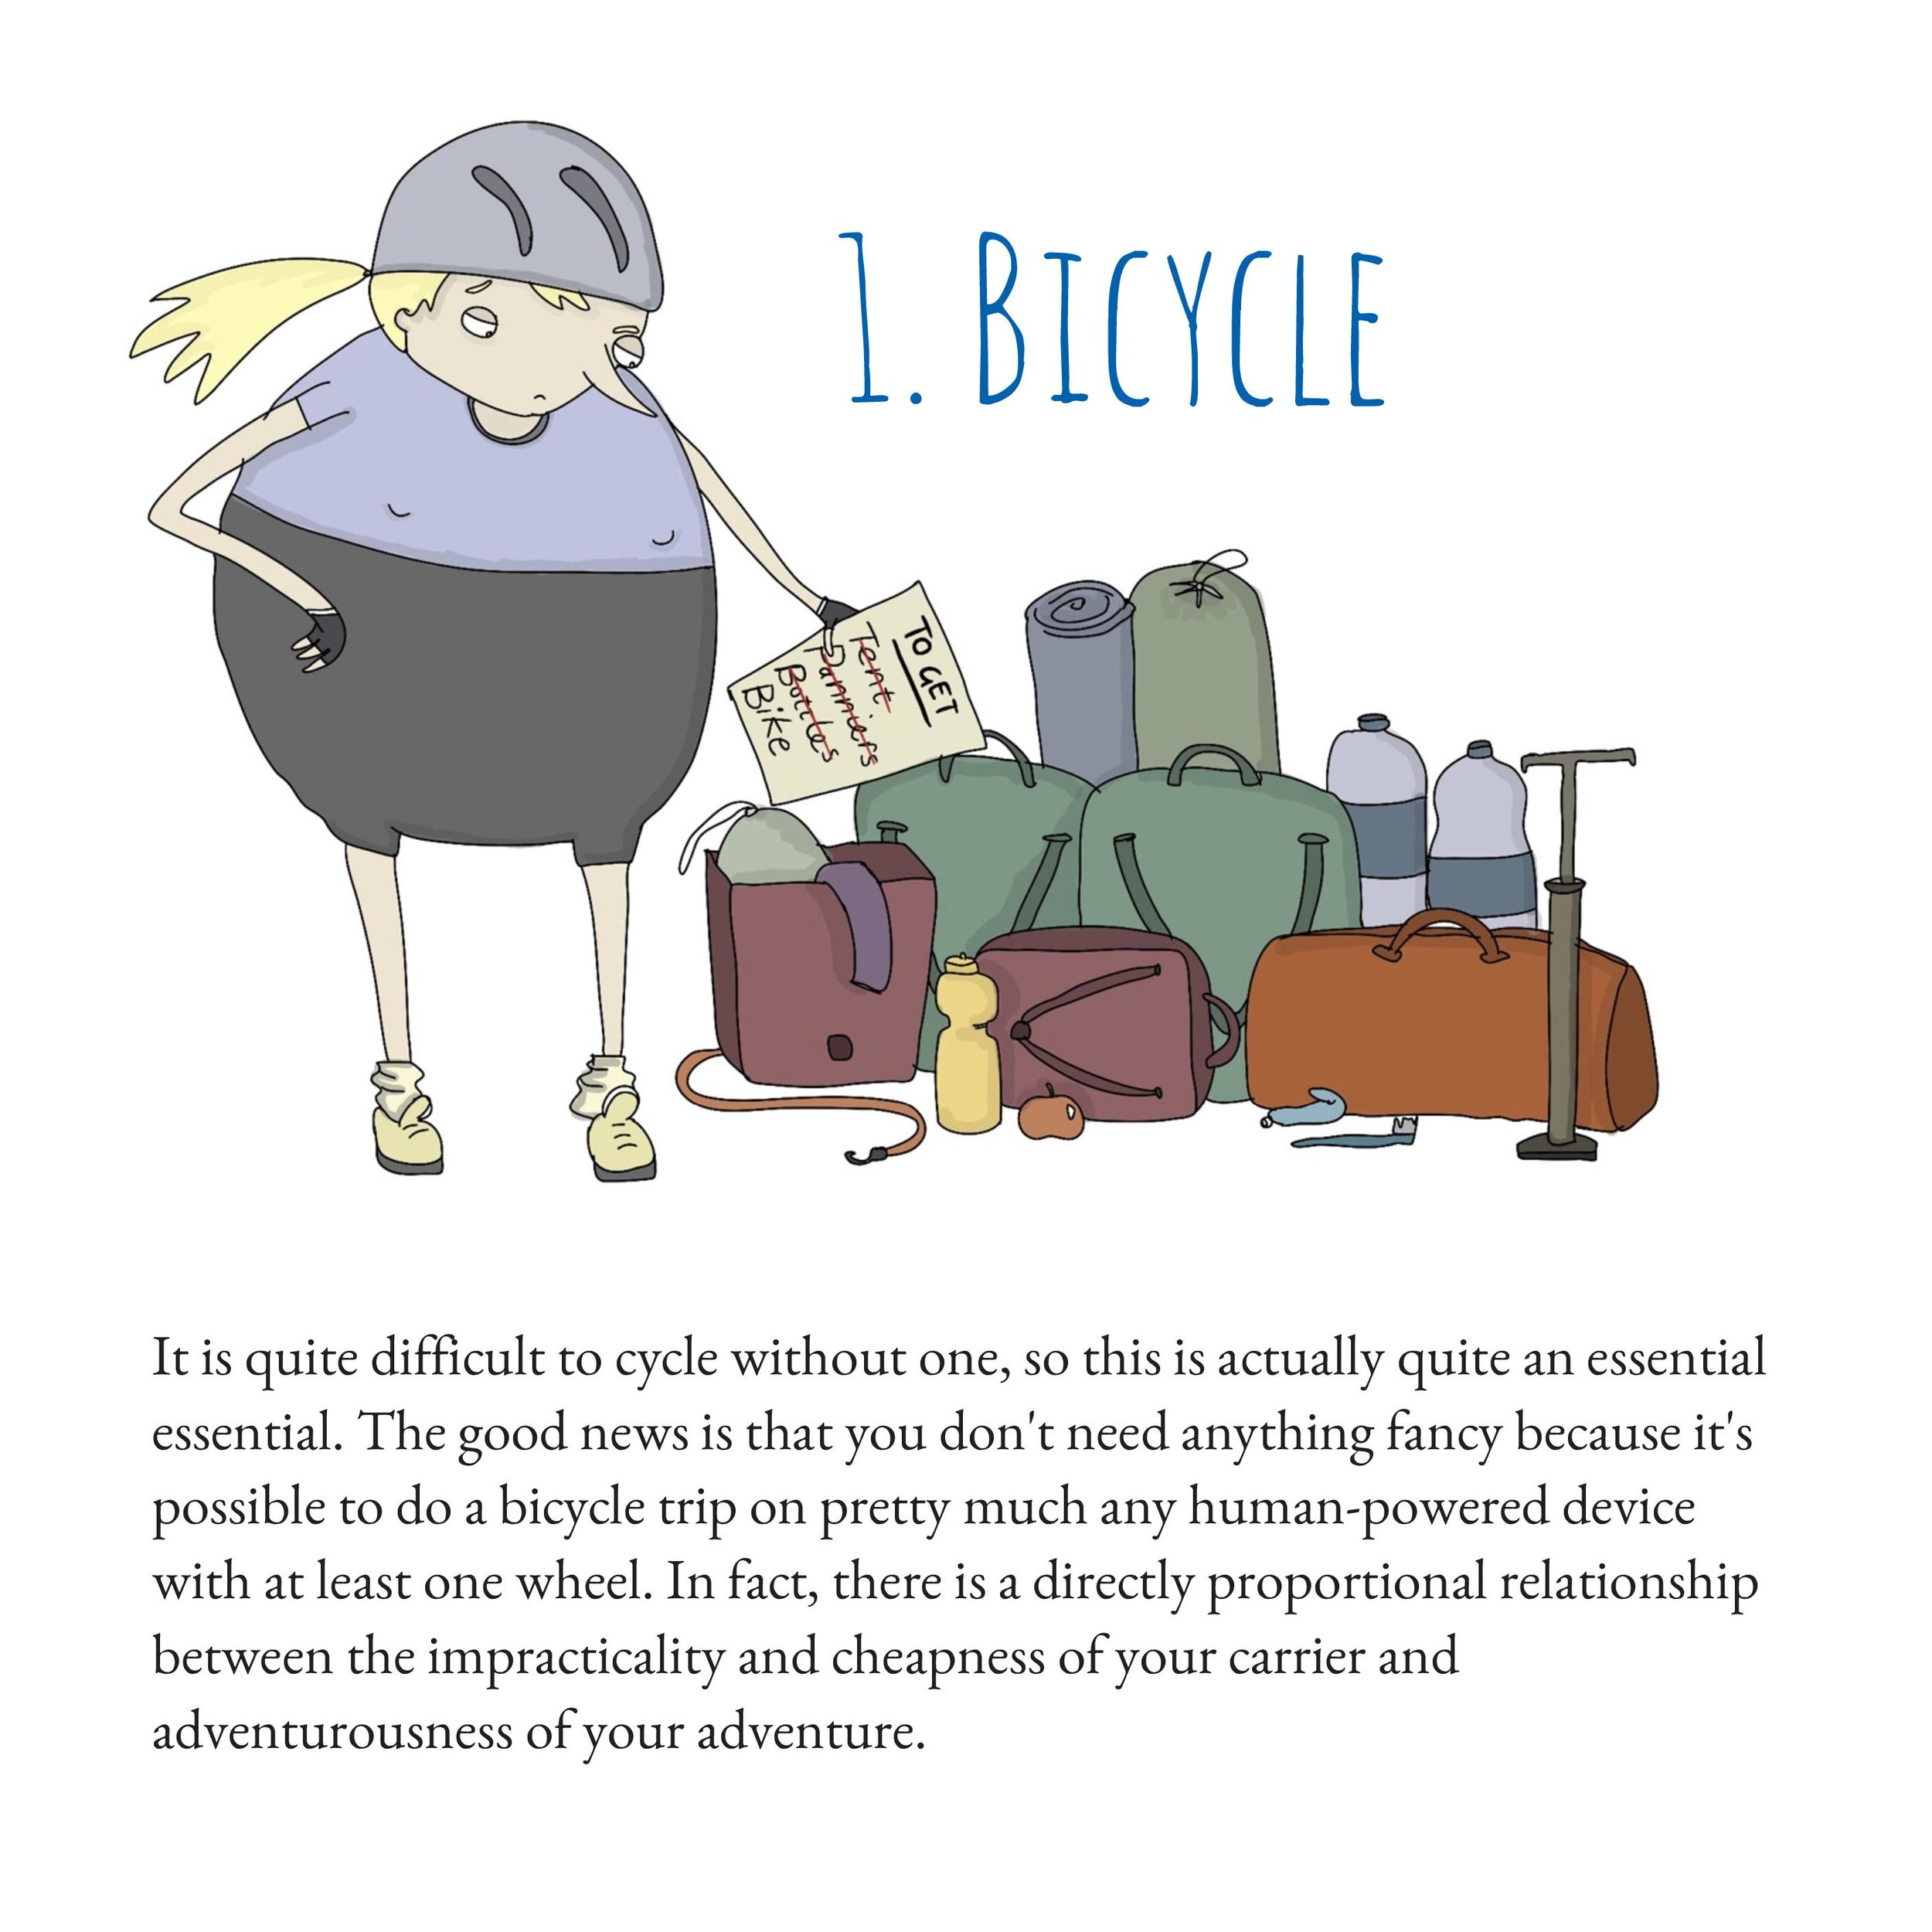 5 bicycle touring essentials-page-002